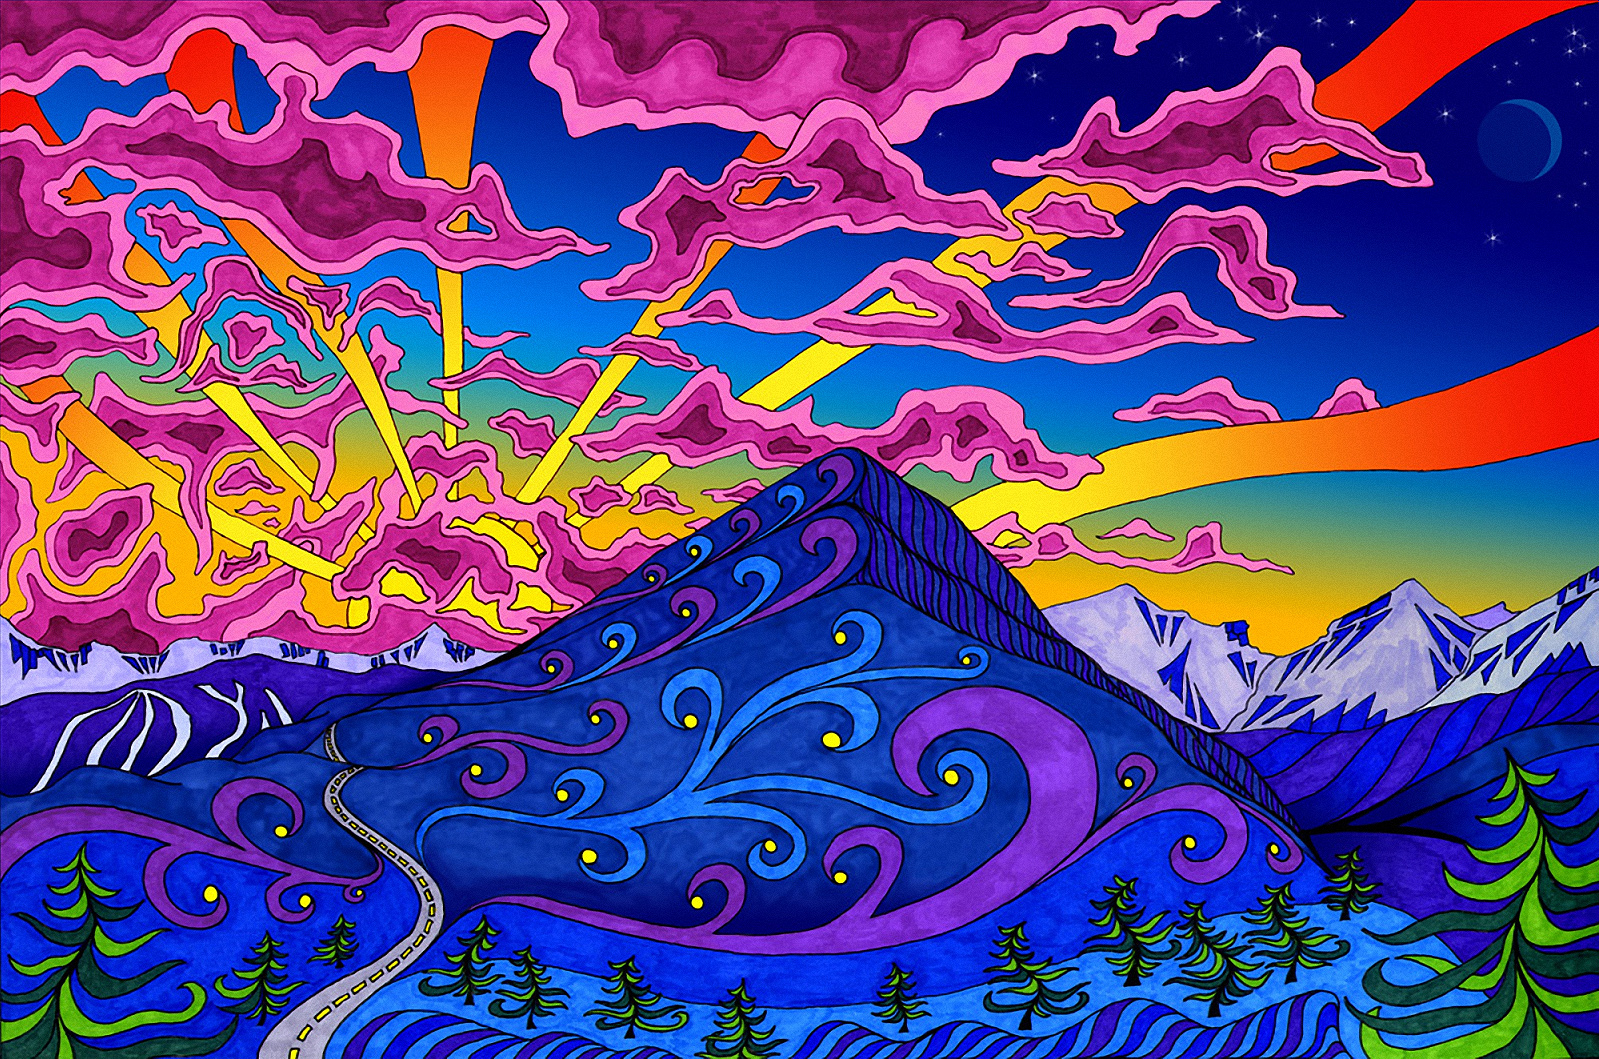 Psychedelic Art Wallpaper HD - WallpaperSafari